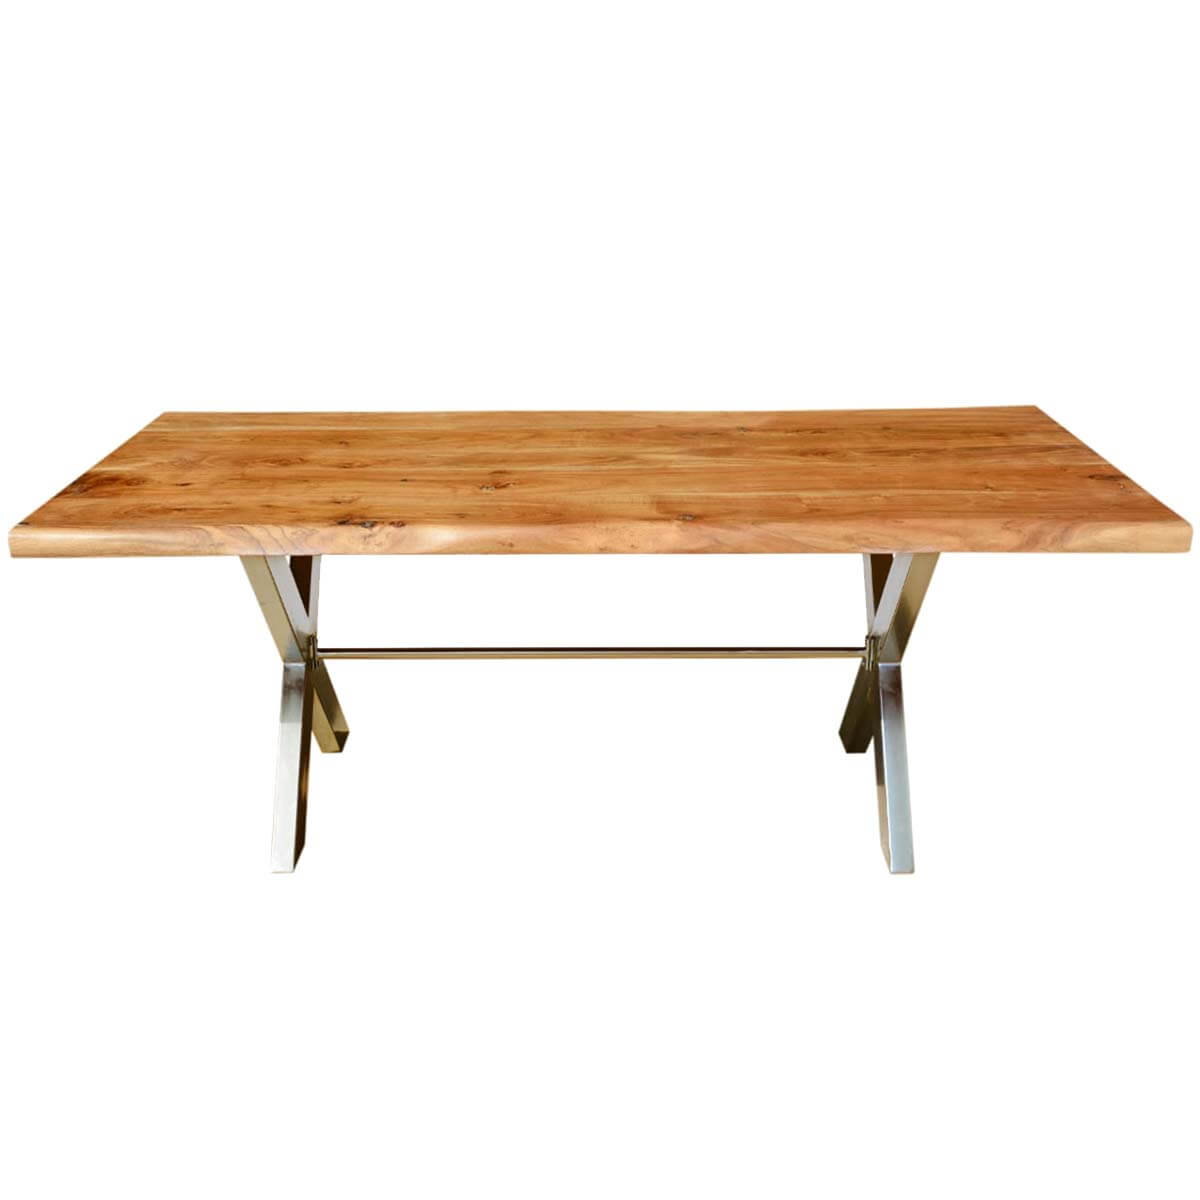 Industrial Cross Legs Solid Wood Live Edge Dining Table : 56071 from www.sierralivingconcepts.com size 1200 x 1200 jpeg 59kB